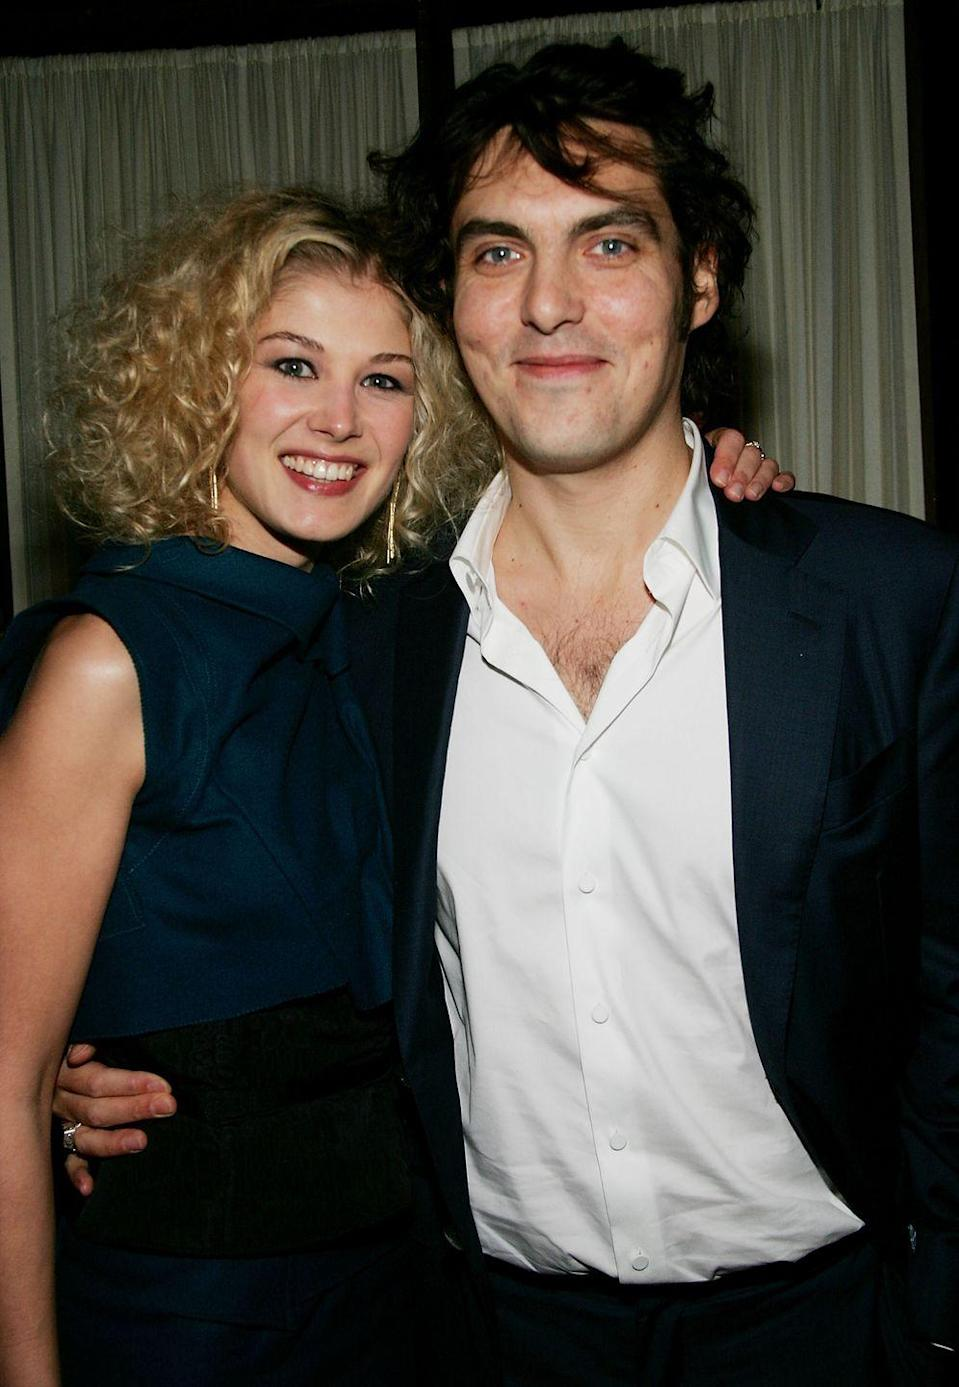 """<p>The two met in 2005 when Pike was starring in <em>Pride and Prejudice </em>(and <span class=""""redactor-invisible-space"""">when Wright served as director for the film.) He <a href=""""http://www.marieclaire.co.uk/news/celebrity-news/rosamund-pike-and-joe-wright-engaged-207910"""" rel=""""nofollow noopener"""" target=""""_blank"""" data-ylk=""""slk:proposed in 2007"""" class=""""link rapid-noclick-resp"""">proposed in 2007</a> two days before the Venice Film Festival, but they parted ways in June 2008. </span></p>"""